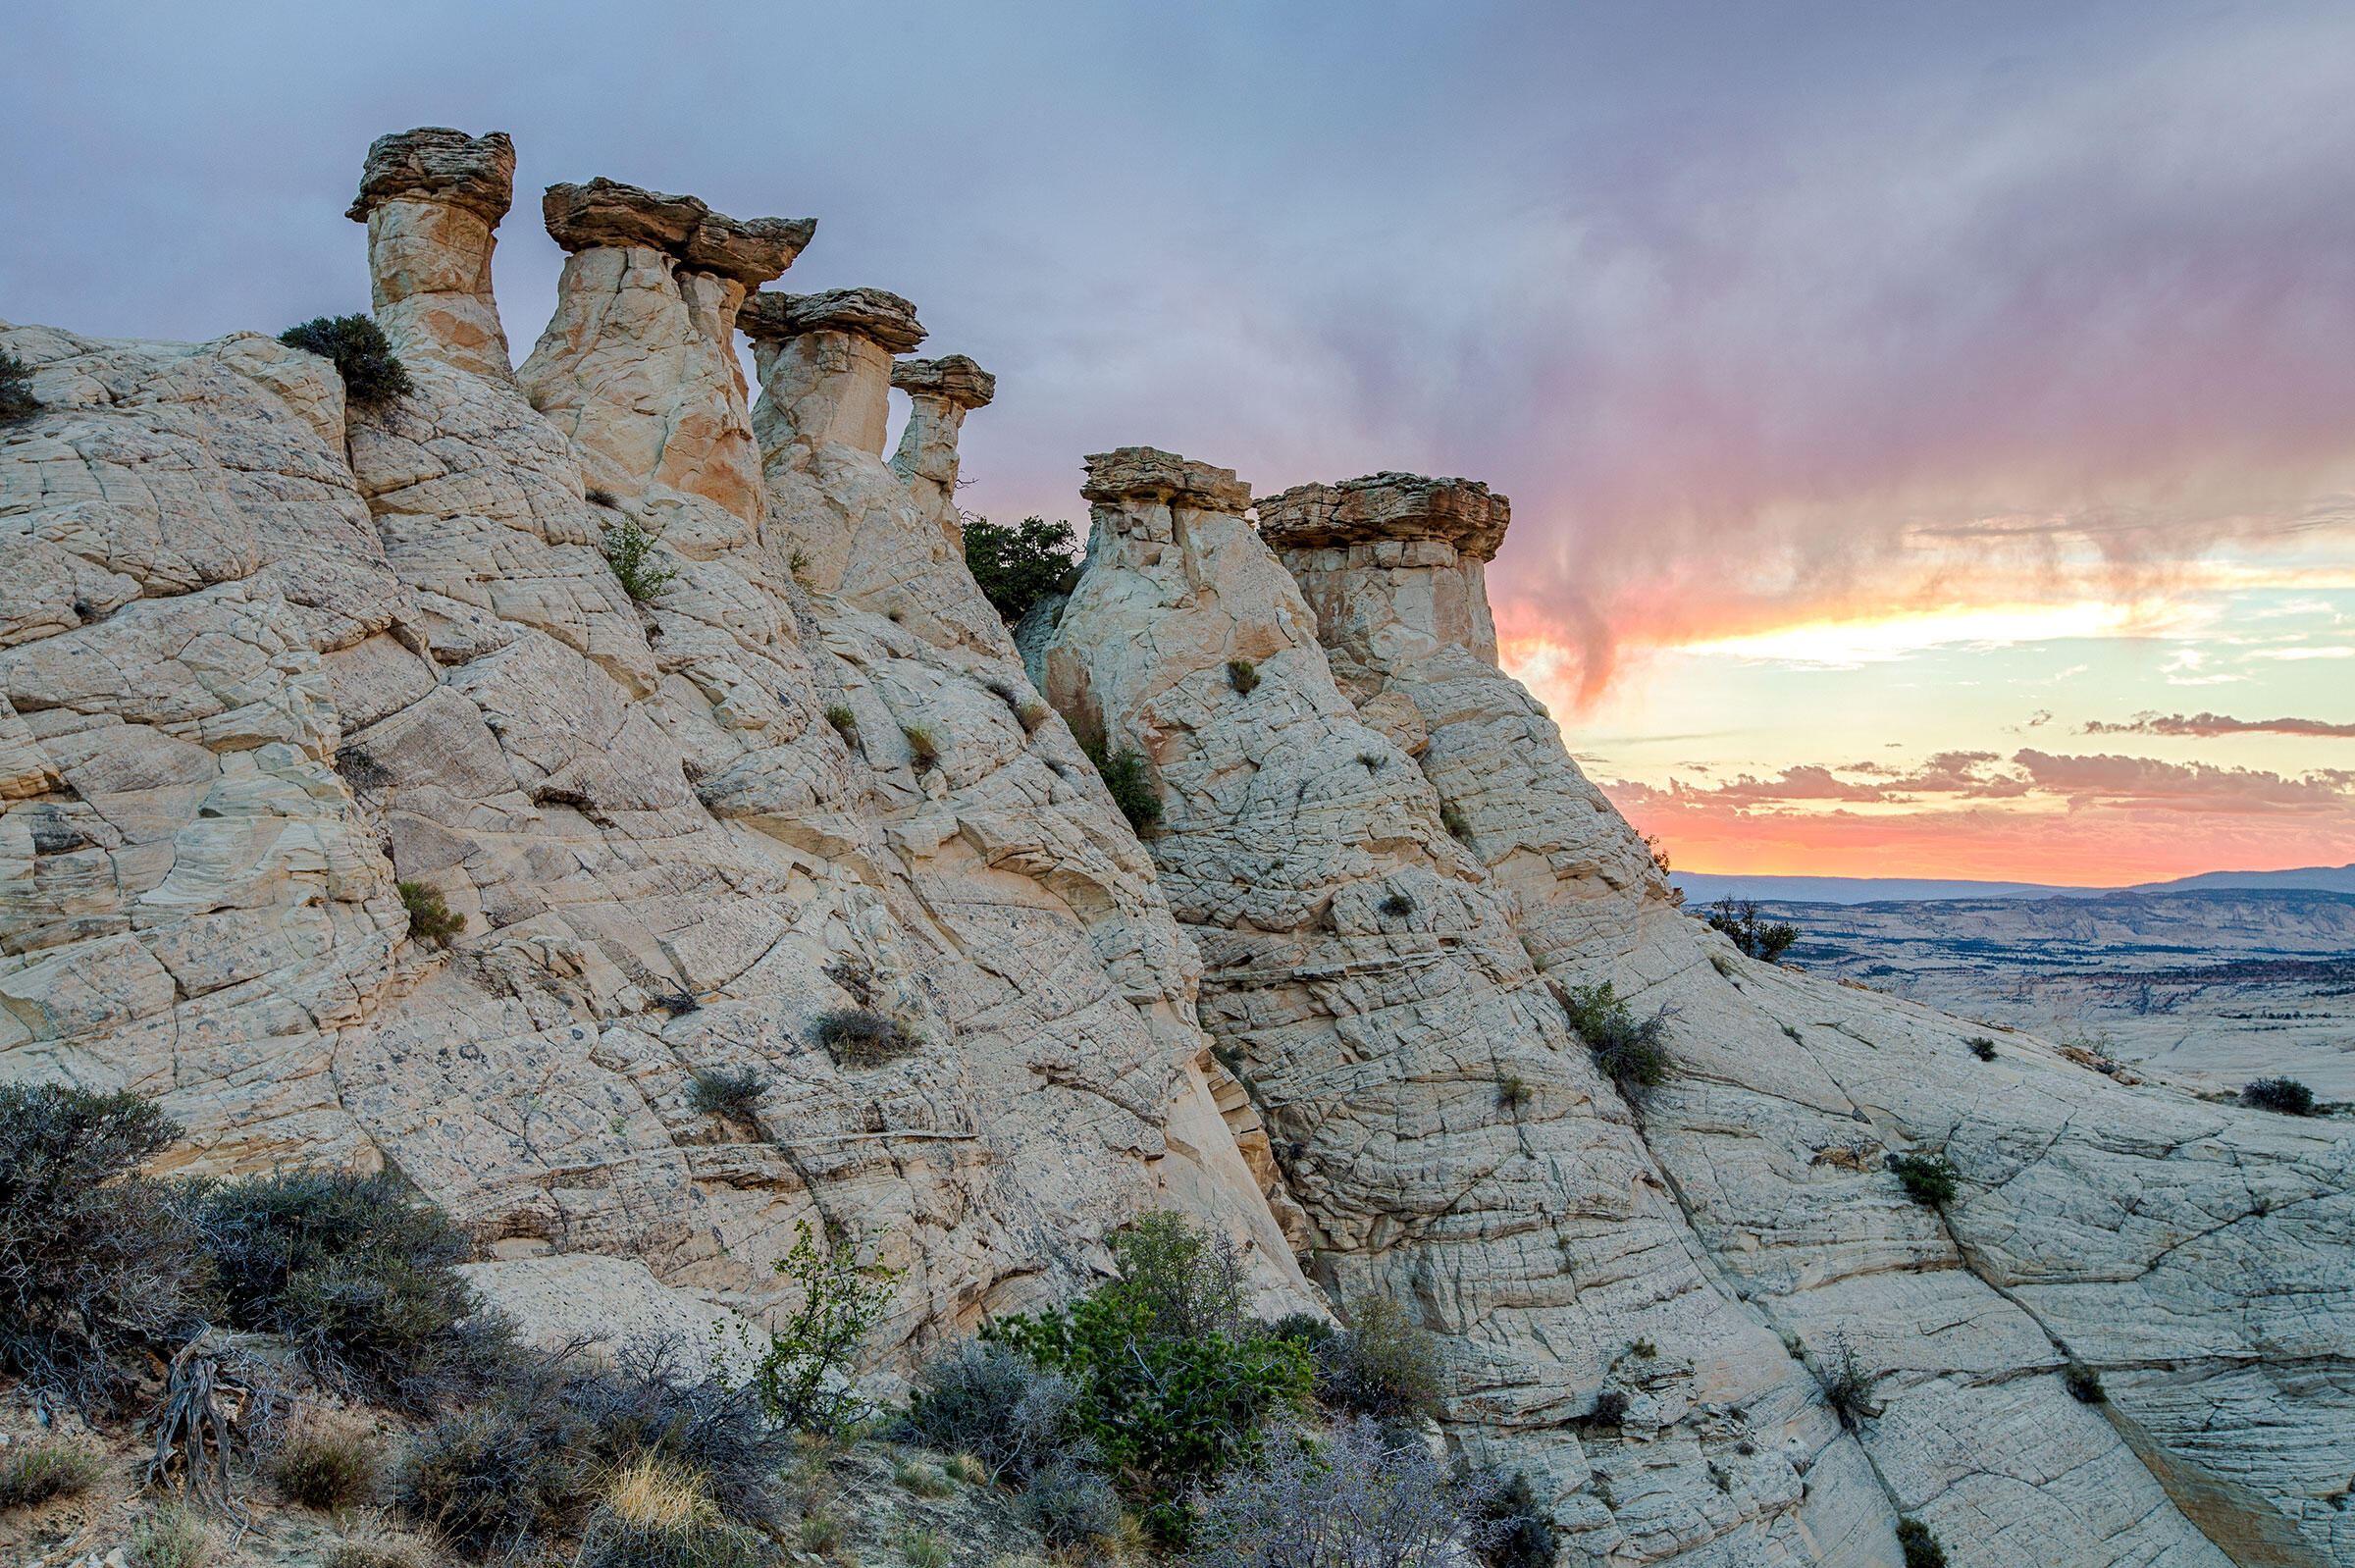 Grijalva says he'll examine the Trump administration's motivations for shrinking Grand Staircase-Escalante National Monument. Bob Wick/BLM